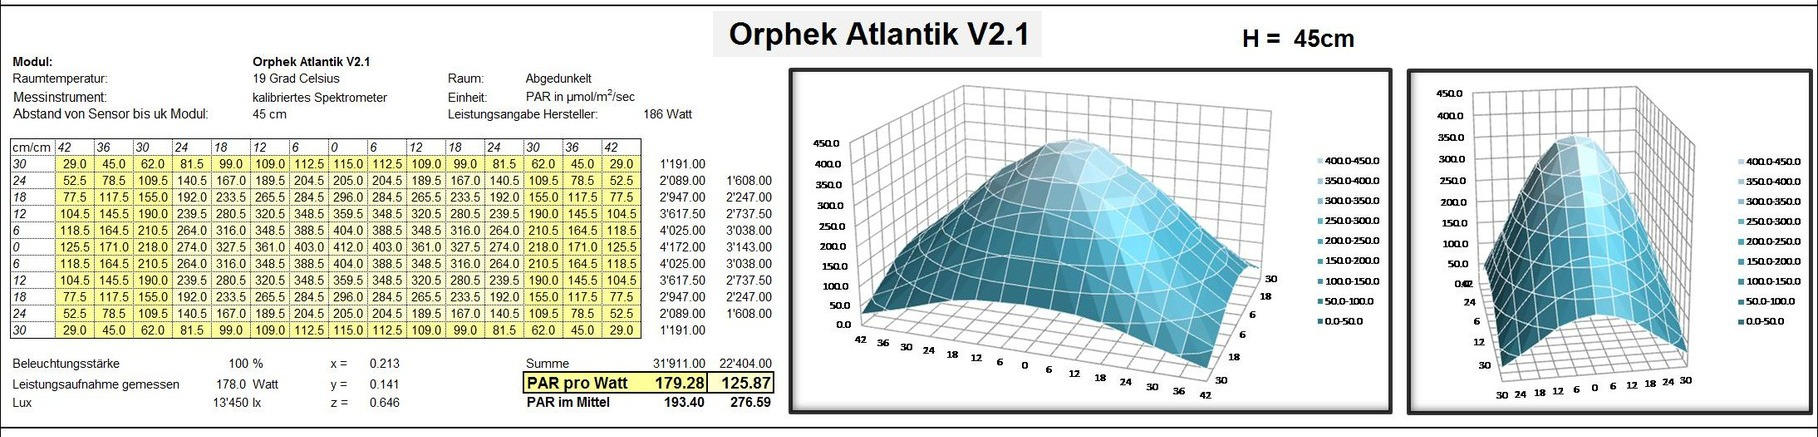 orphek-Atlantik PAR MAP-V2.1-45cm